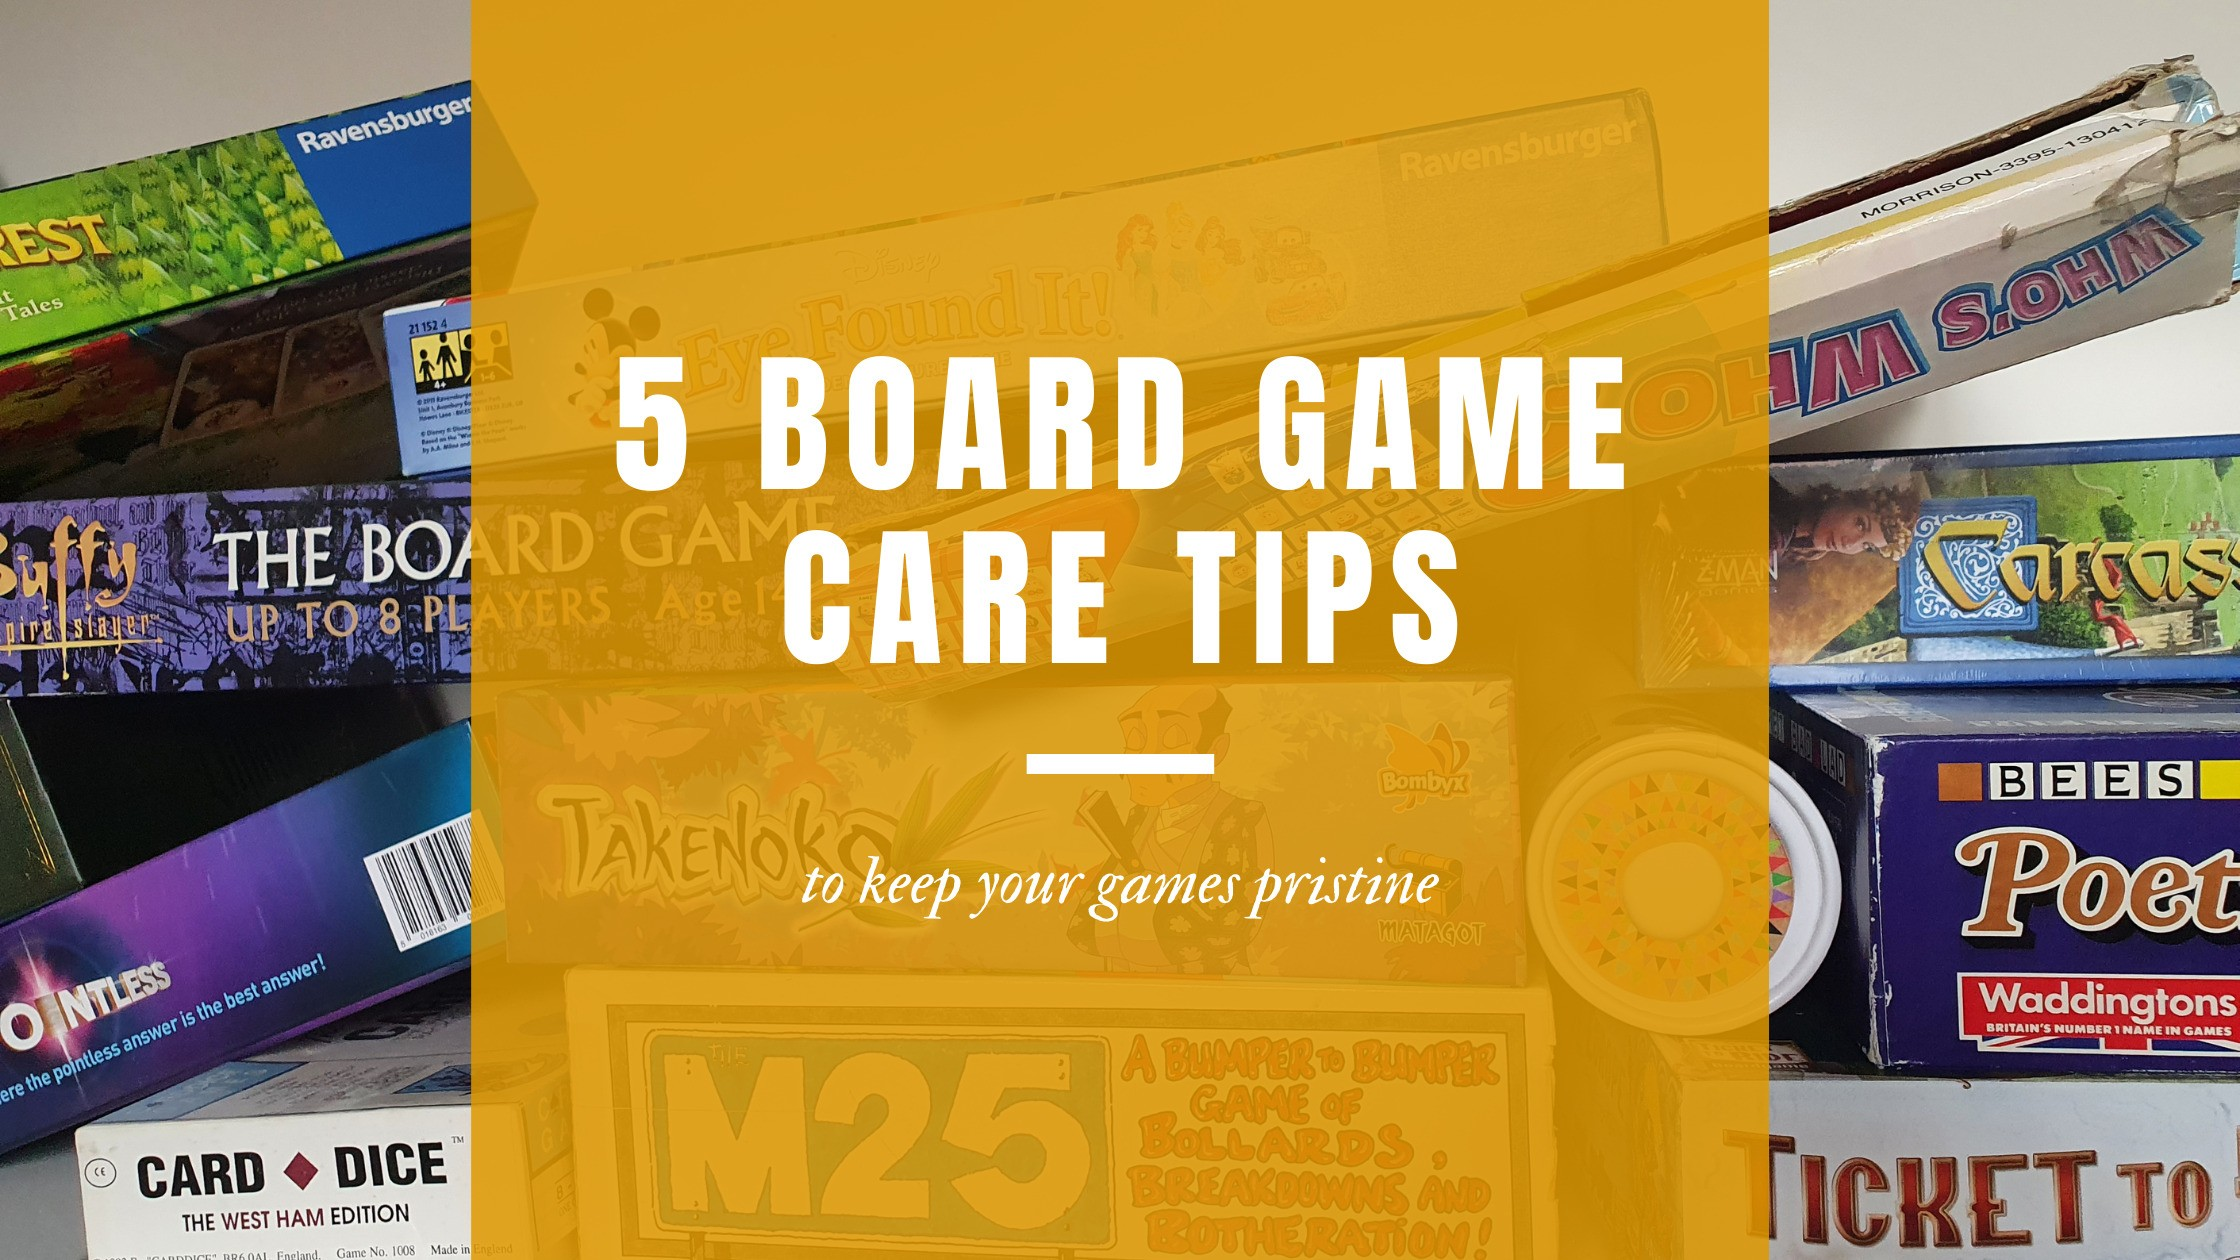 5 Board game care tips to keep your games pristine